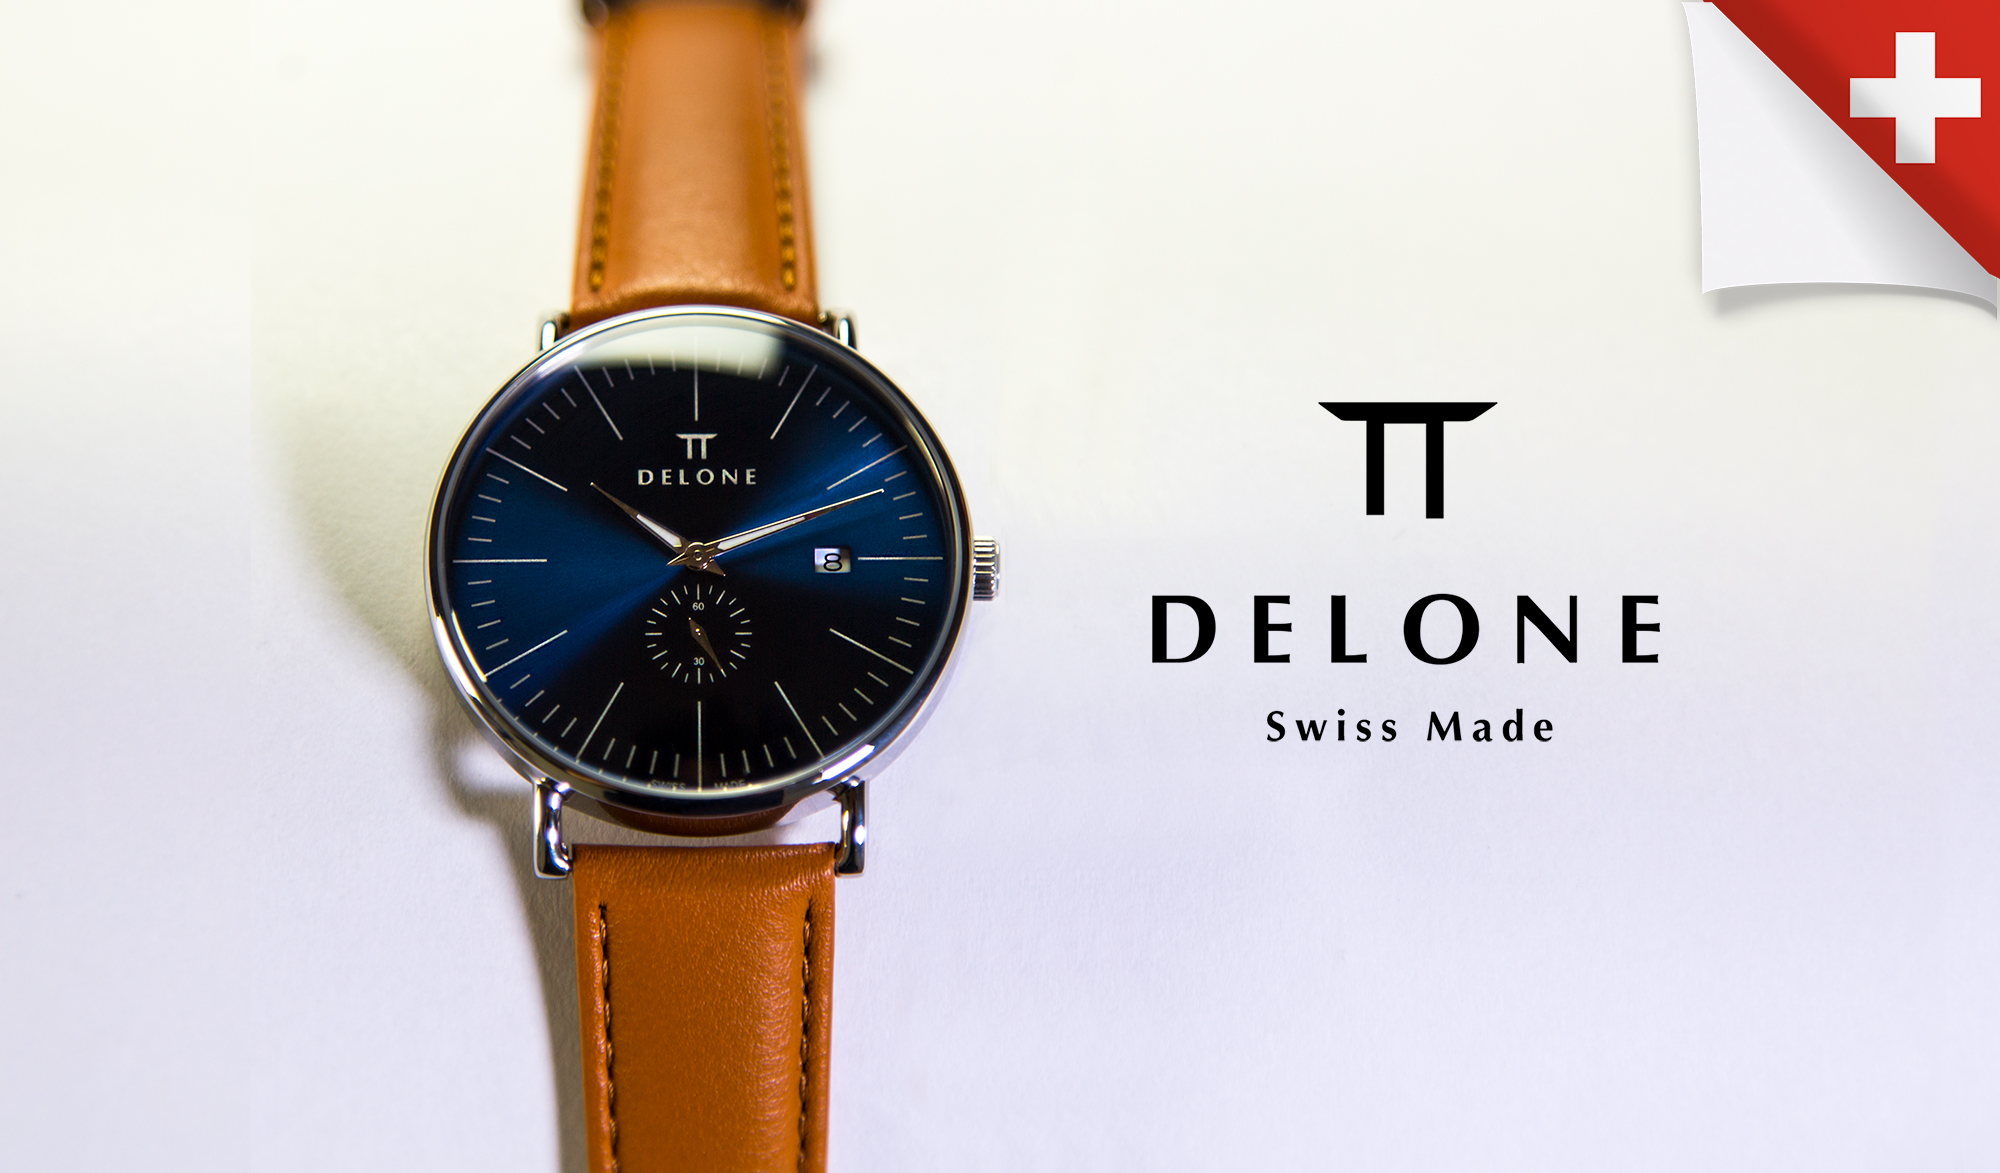 Announcing the Launch of DELONE Authentic Swiss Made Watches